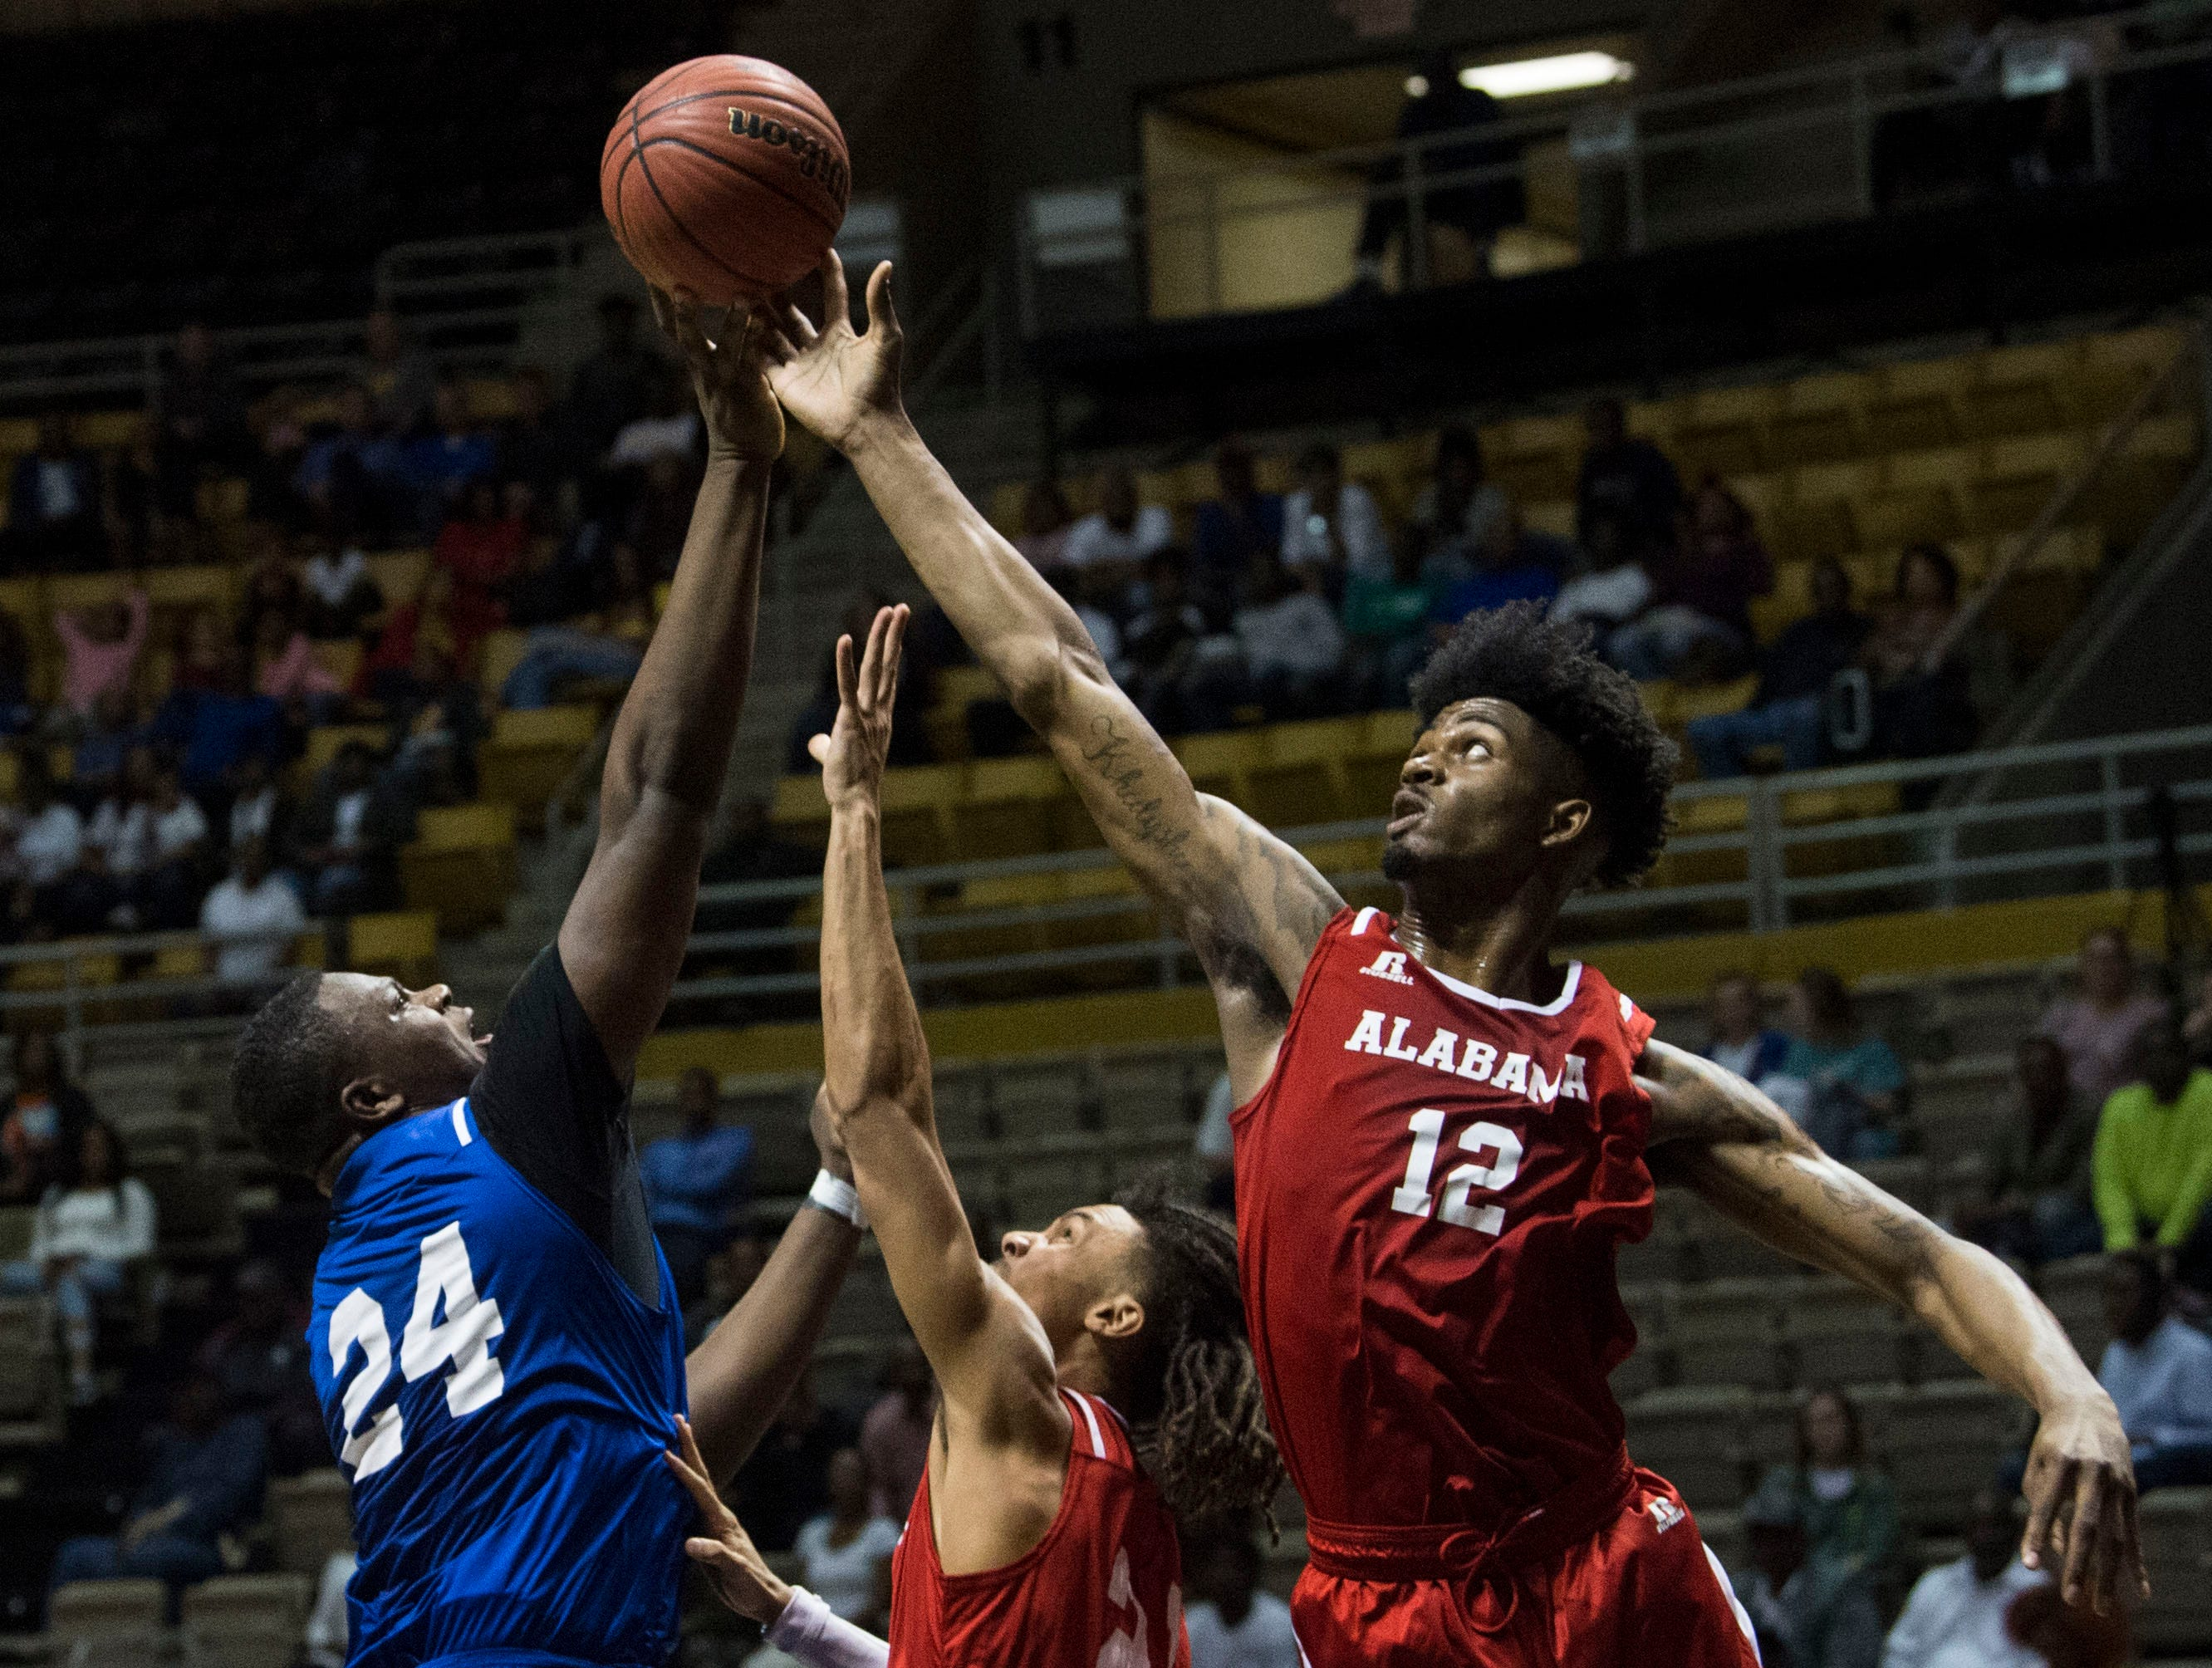 Mississippi's John Rawls (24) and Alabama's DeAntoni Gordon (12) reach for a rebound during the Alabama-Mississippi All-Star game at the Dunn-Oliver Acadome in Montgomery, Ala., on Friday, March 15, 2019. Mississippi All-stars leads the Alabama All-stars 47-39 at halftime.